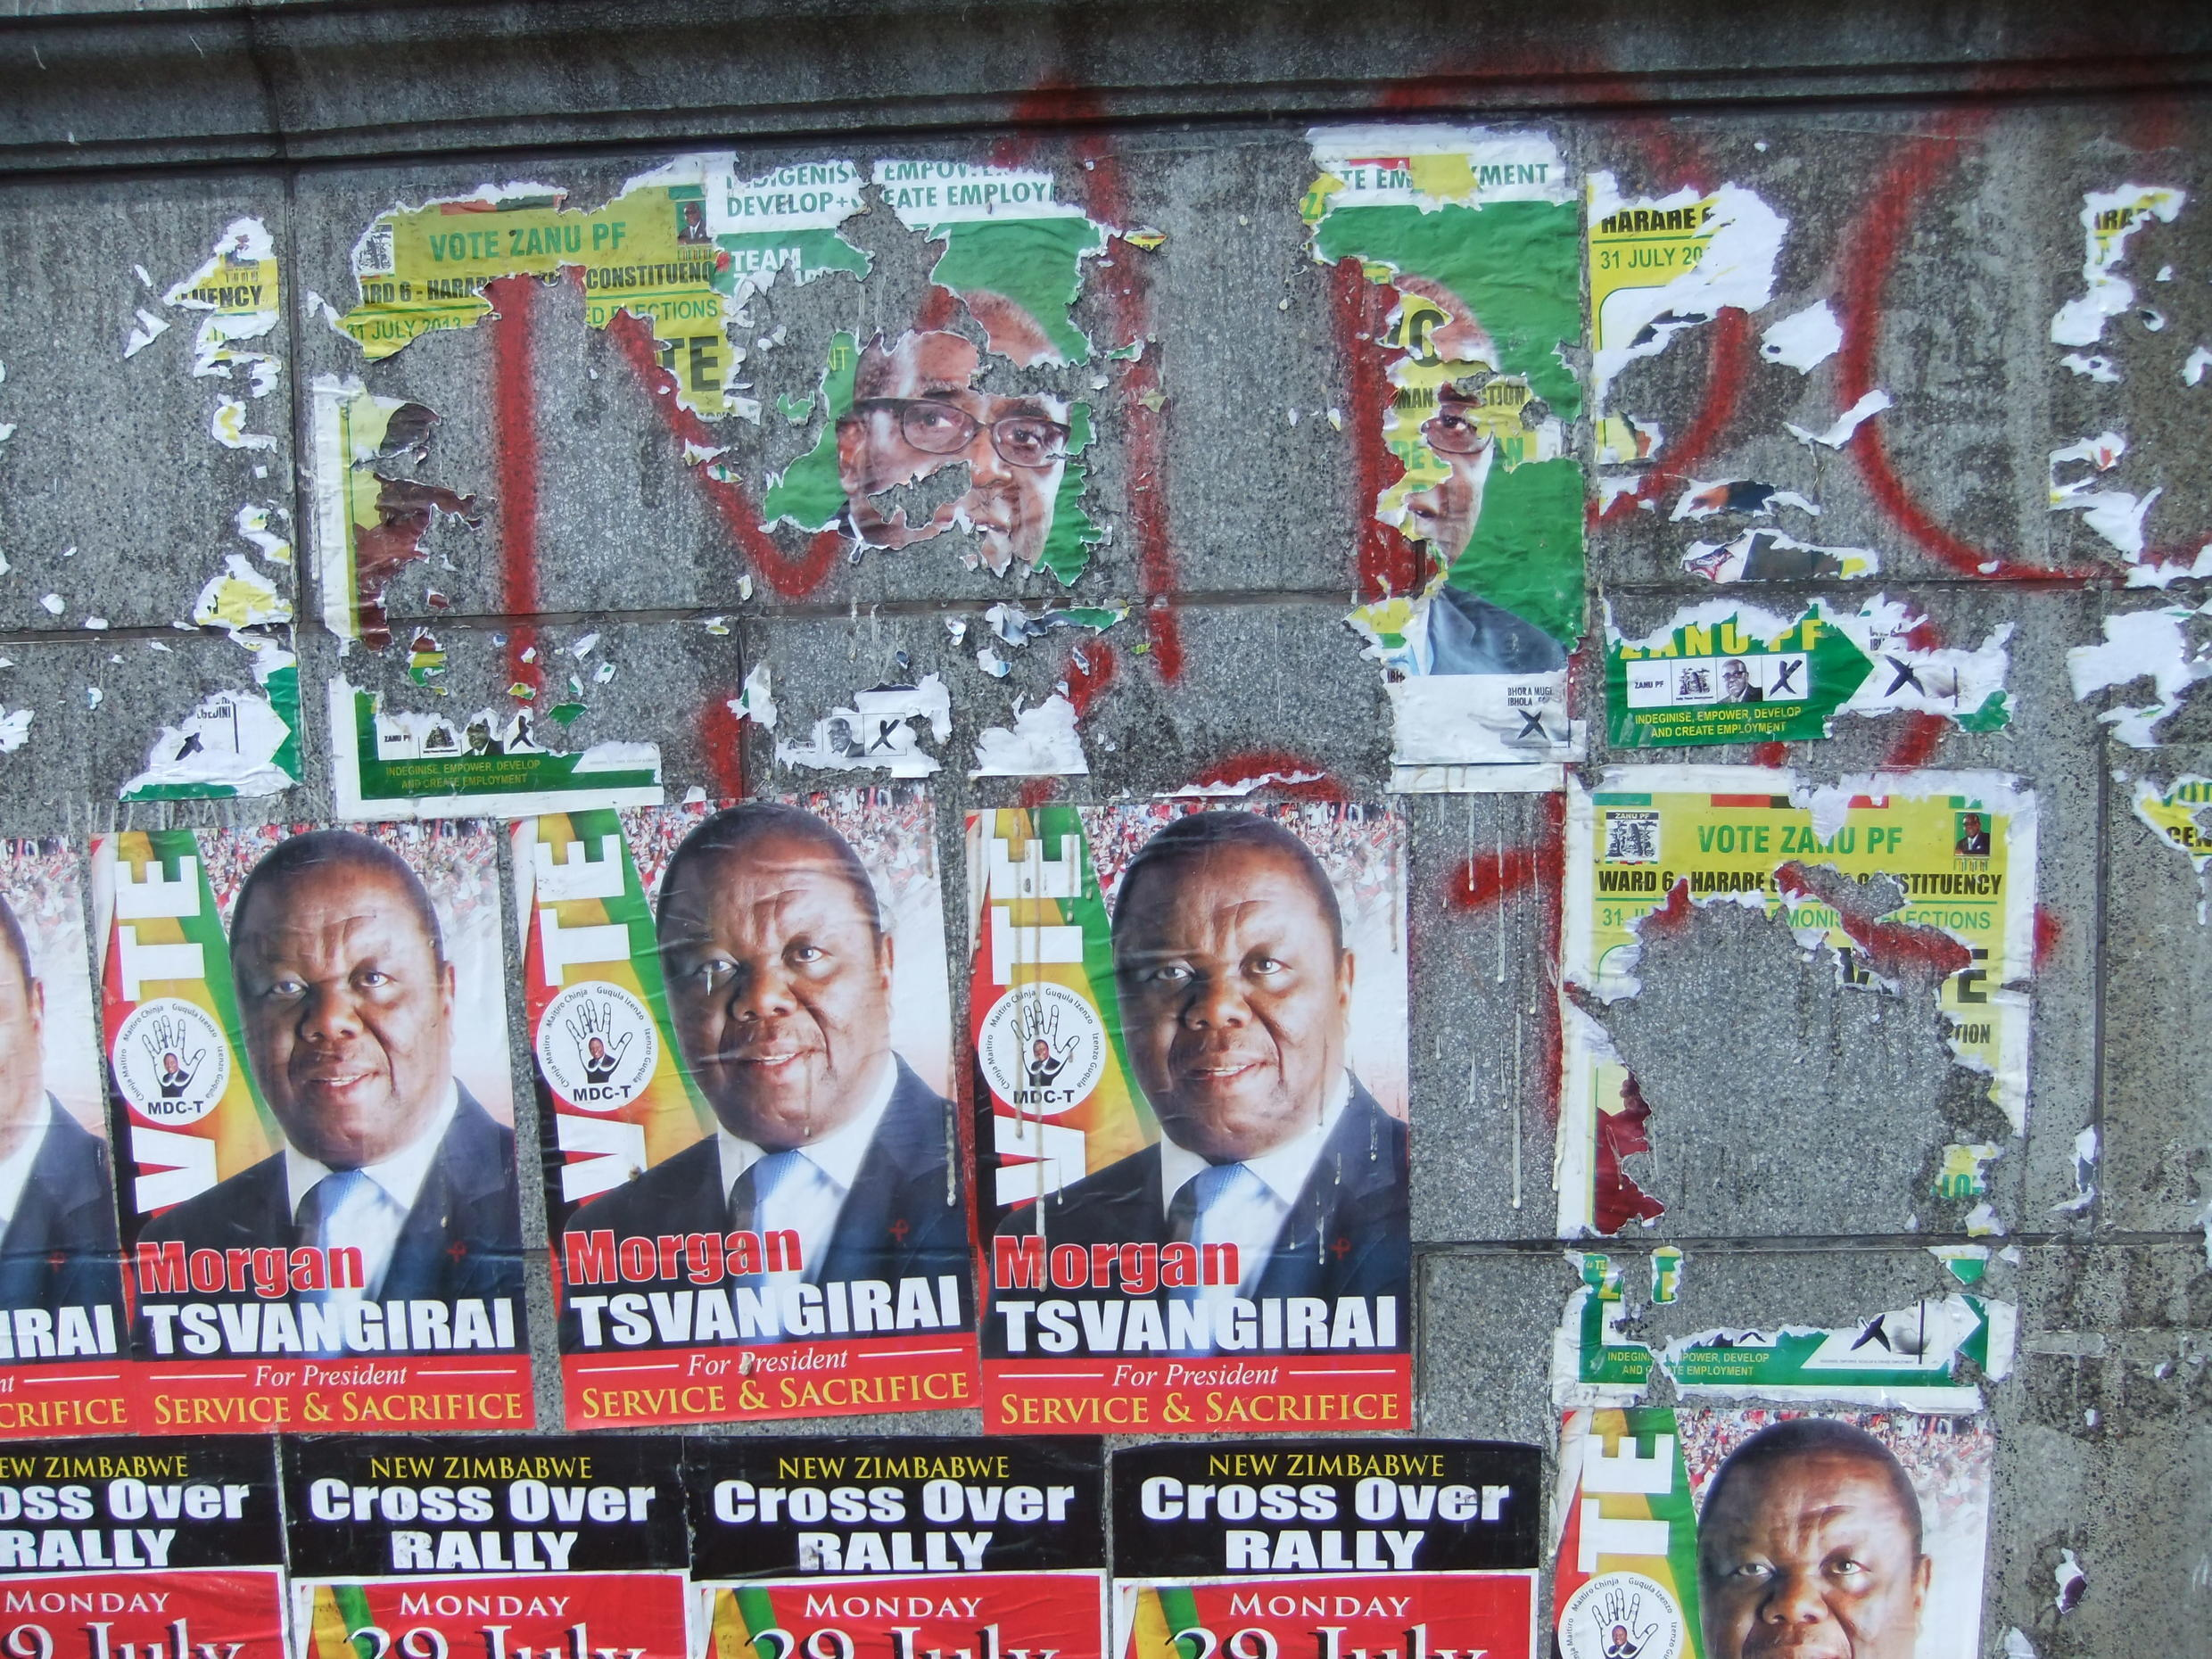 Campaign posters in Harare